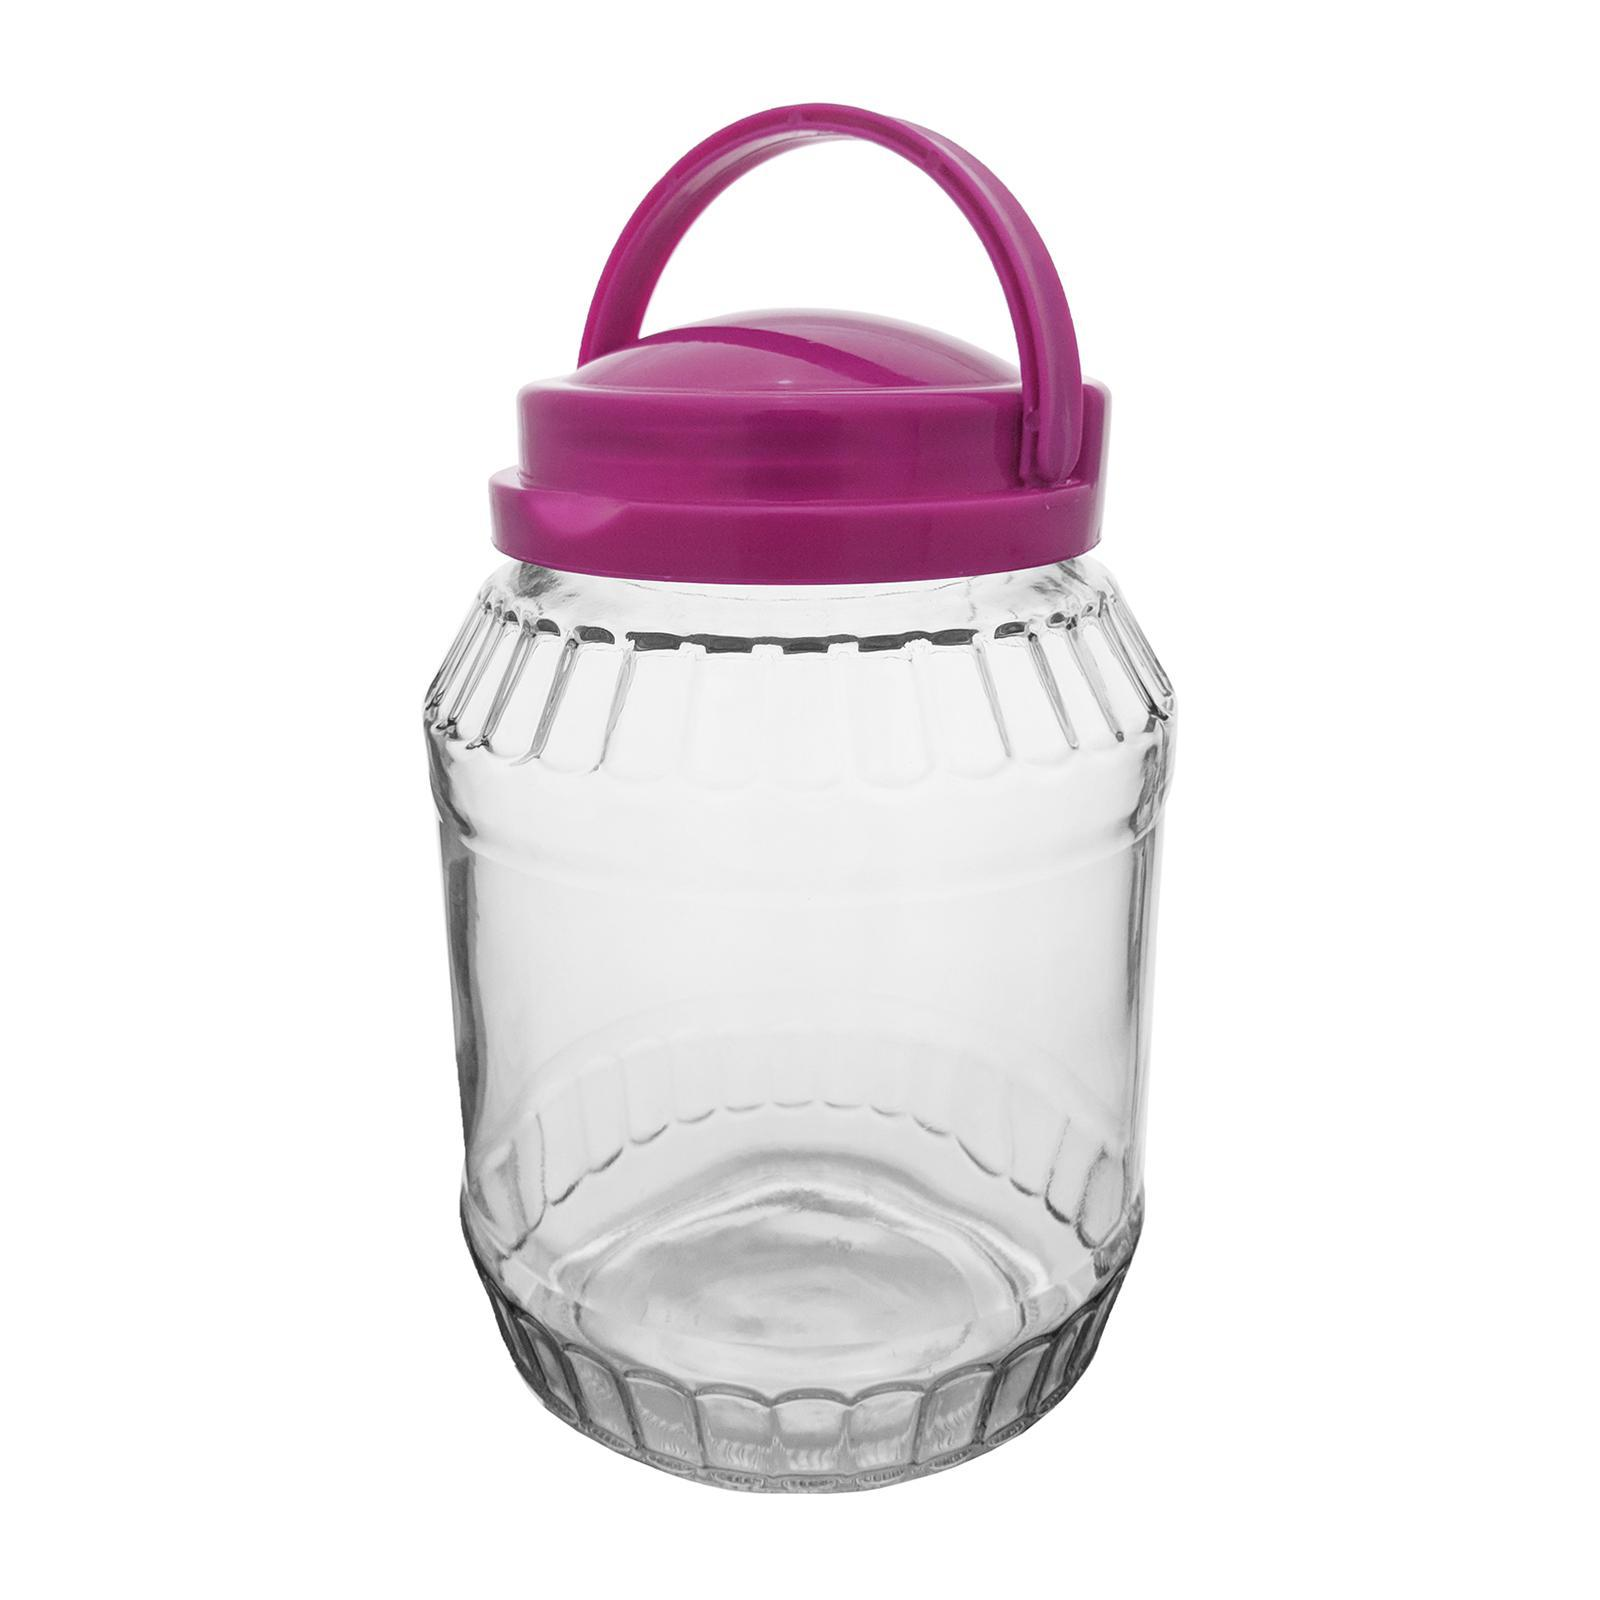 ALS Glass Jar With Handle 2.3L - Purple